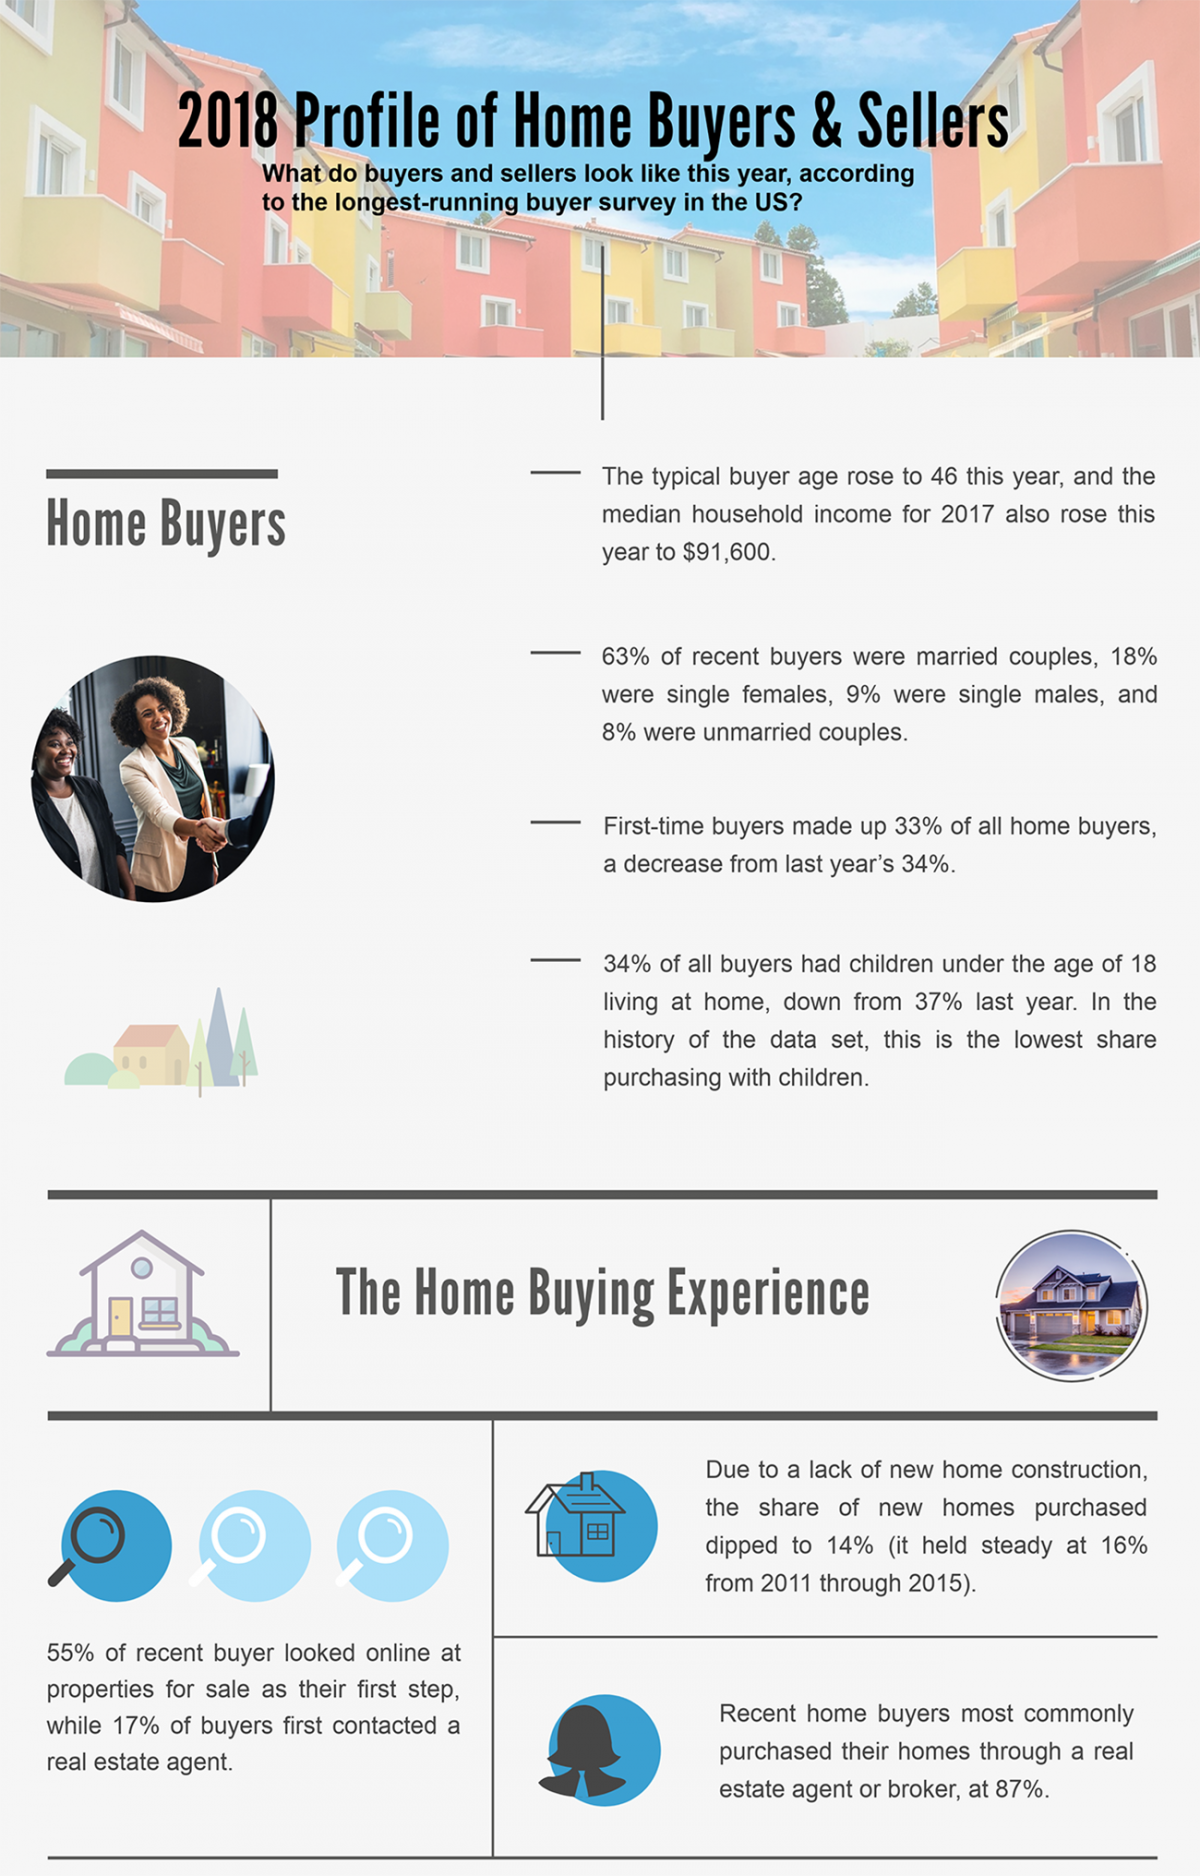 2018 profile of home buyers and sellers infographic crop 10 29 2018 1300w 2032h